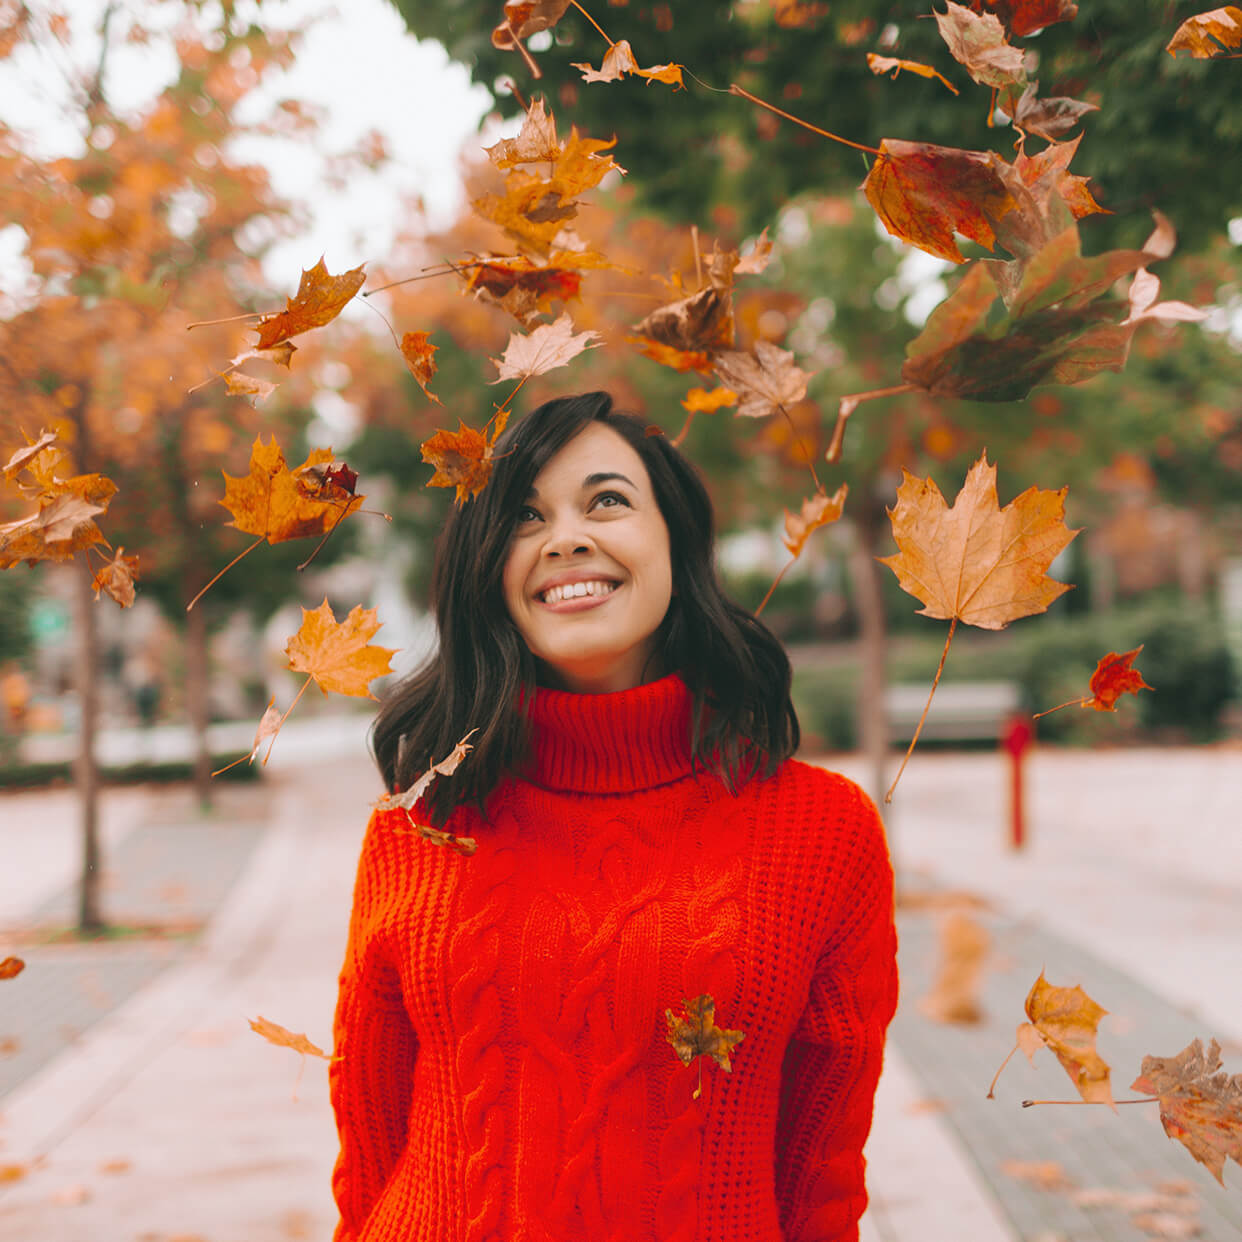 50 Best Fall Photoshoot Ideas To Try In Autumn 2019